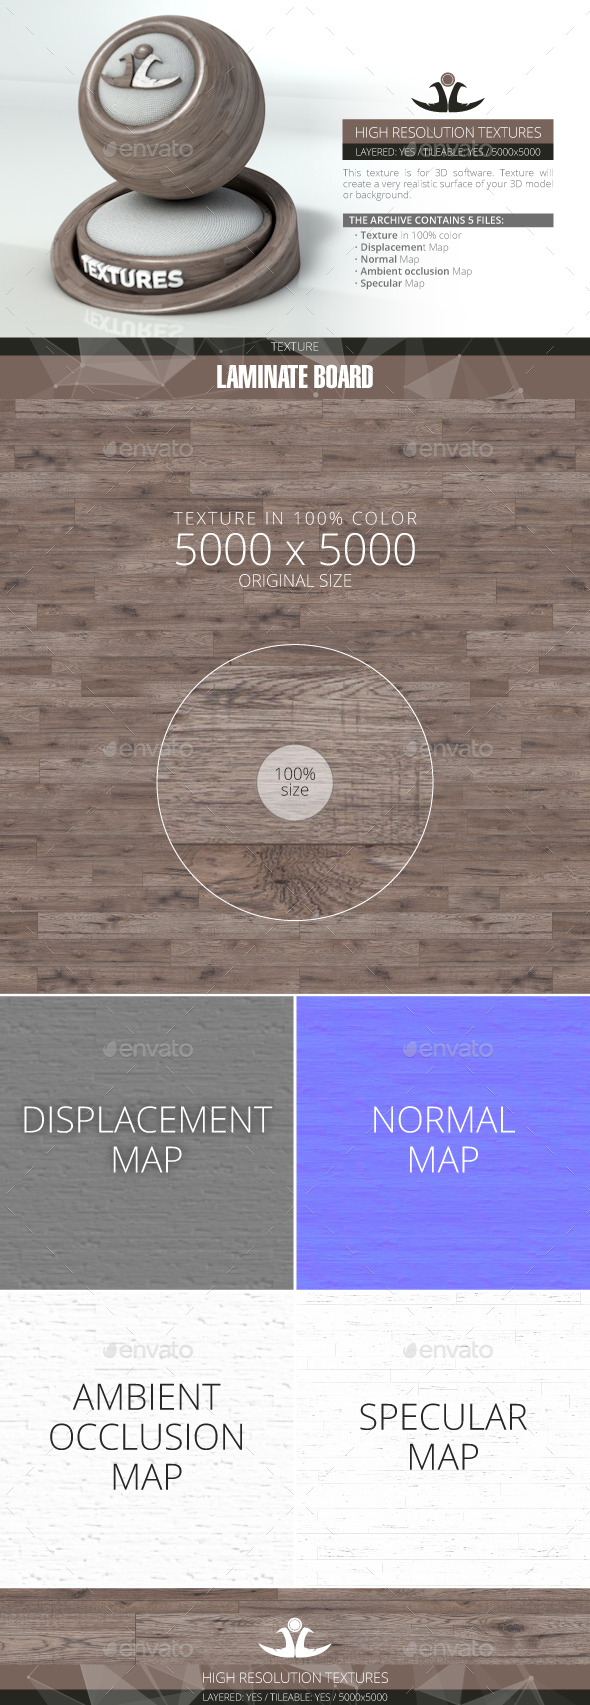 Laminate Board 55 - 3DOcean Item for Sale